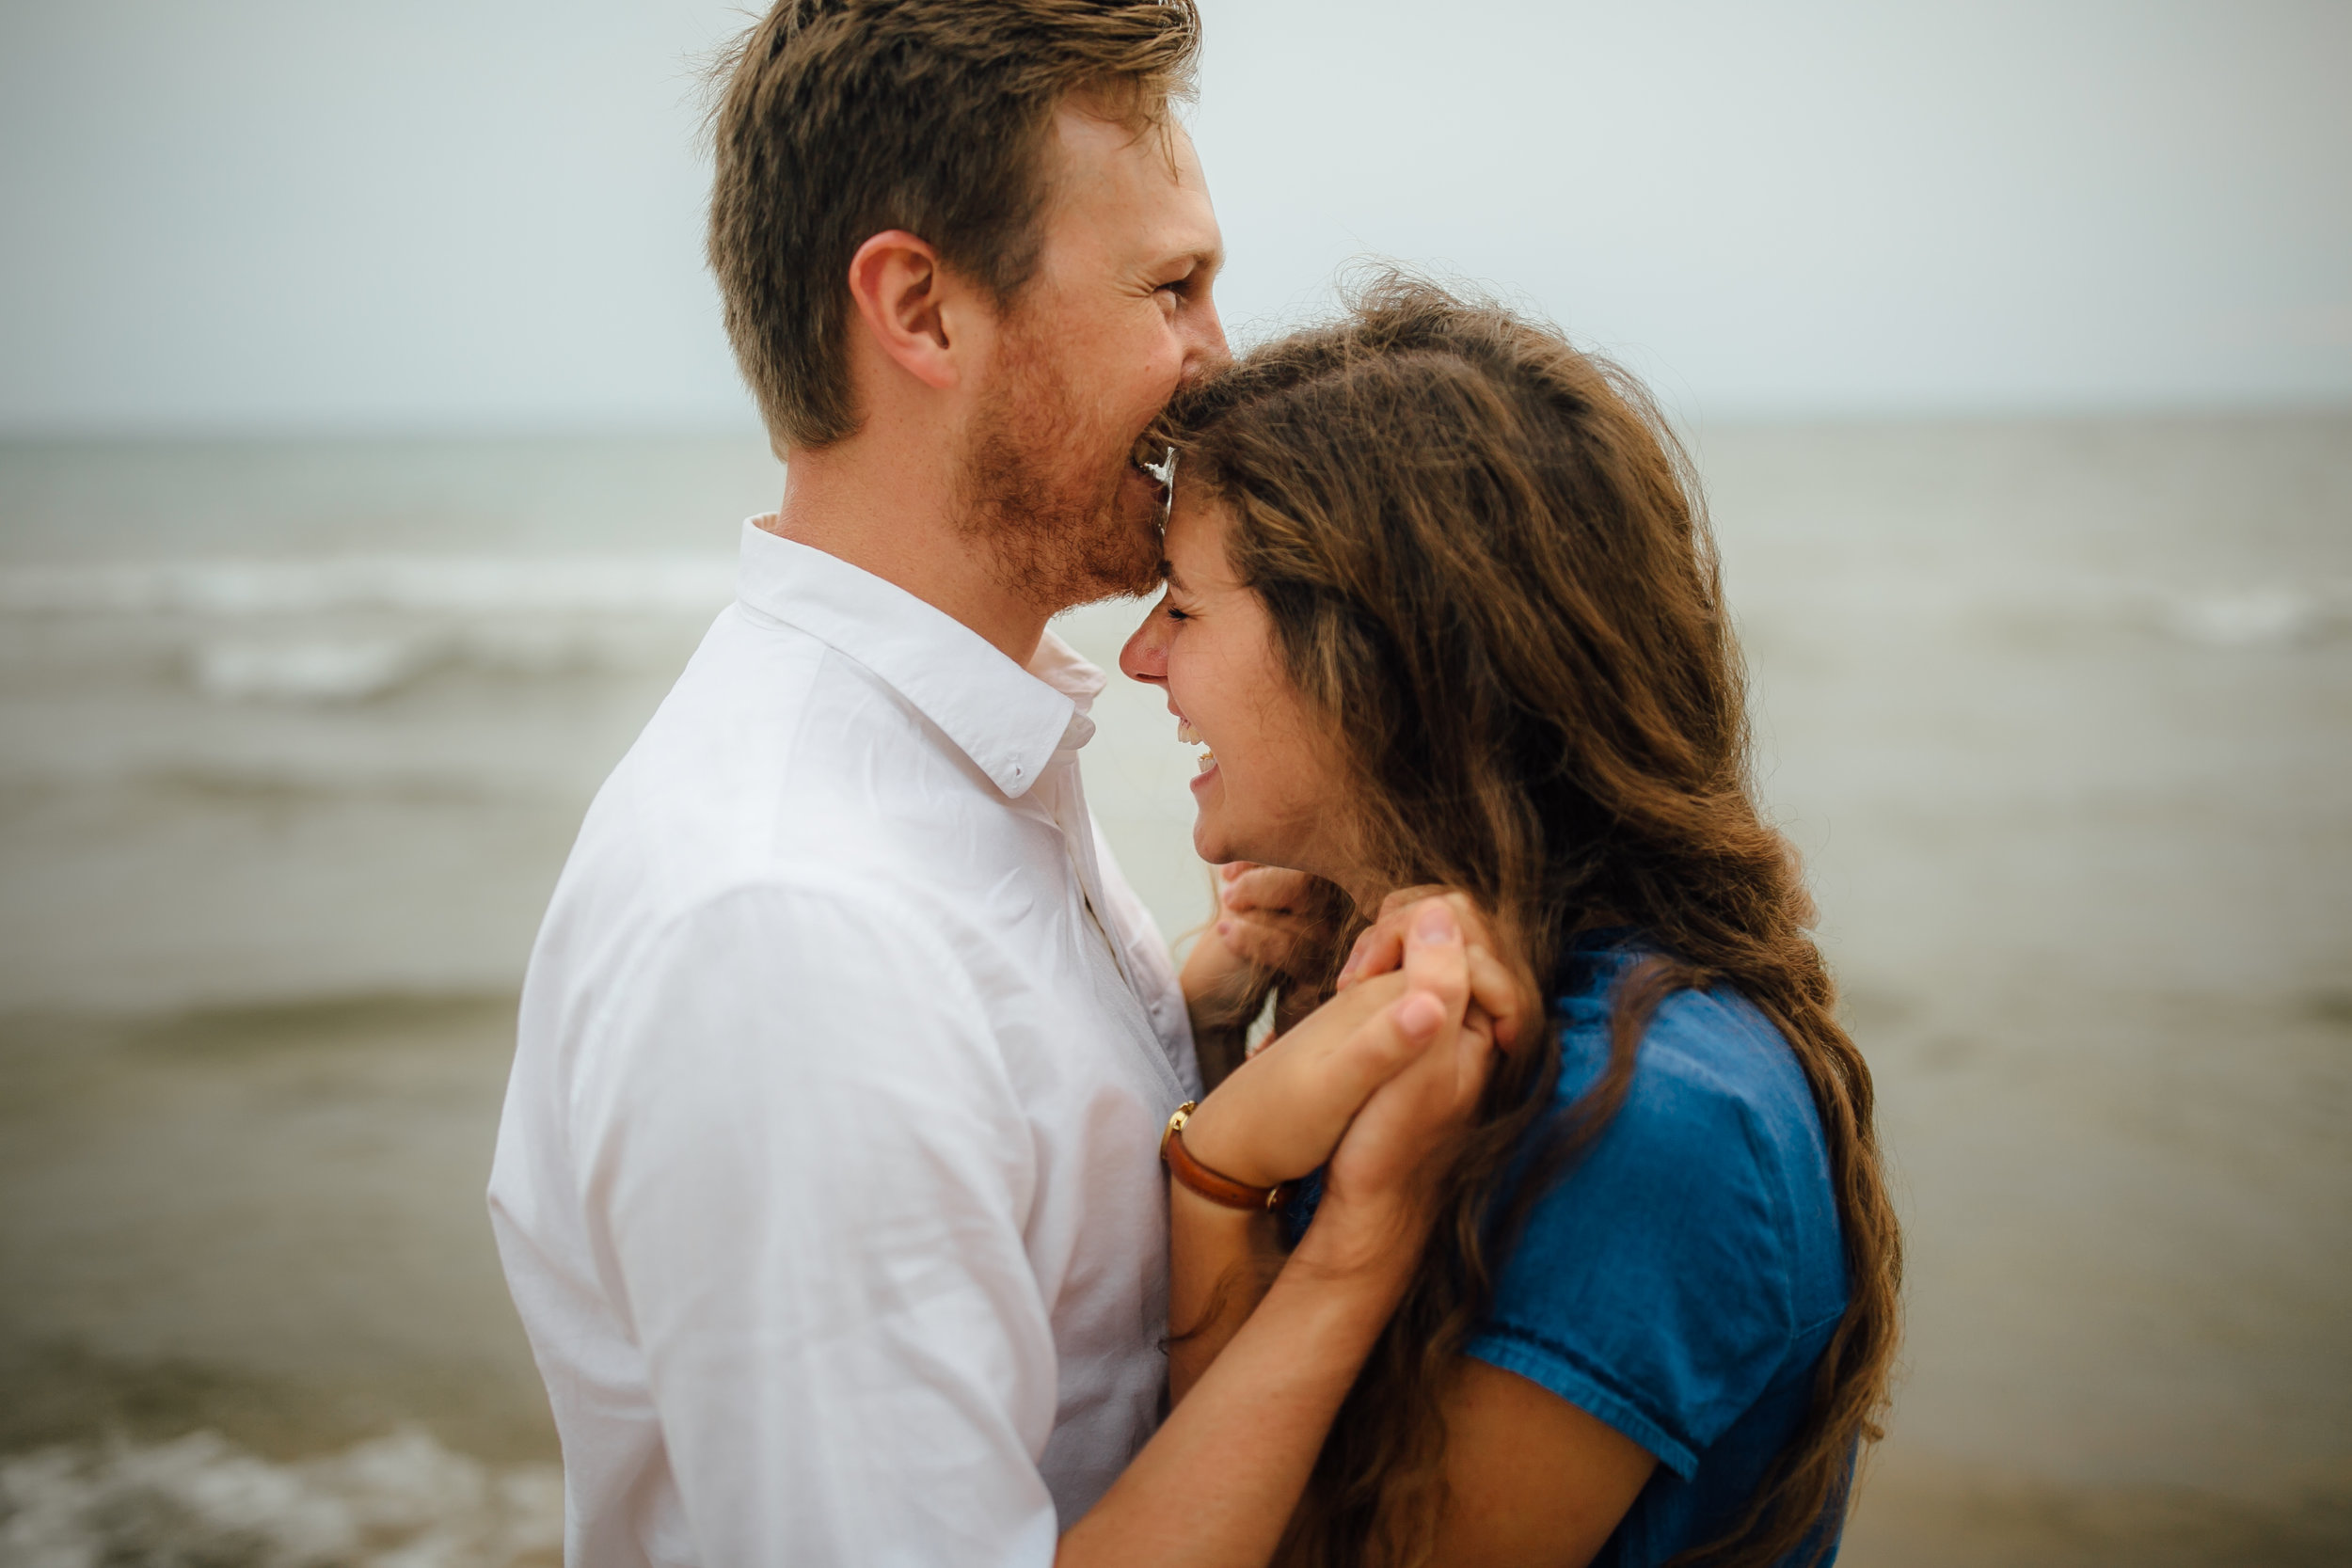 2018-8-Shelby-Andrew-Holland-Engagement-Michigan-Wedding-Photographer-235.jpg